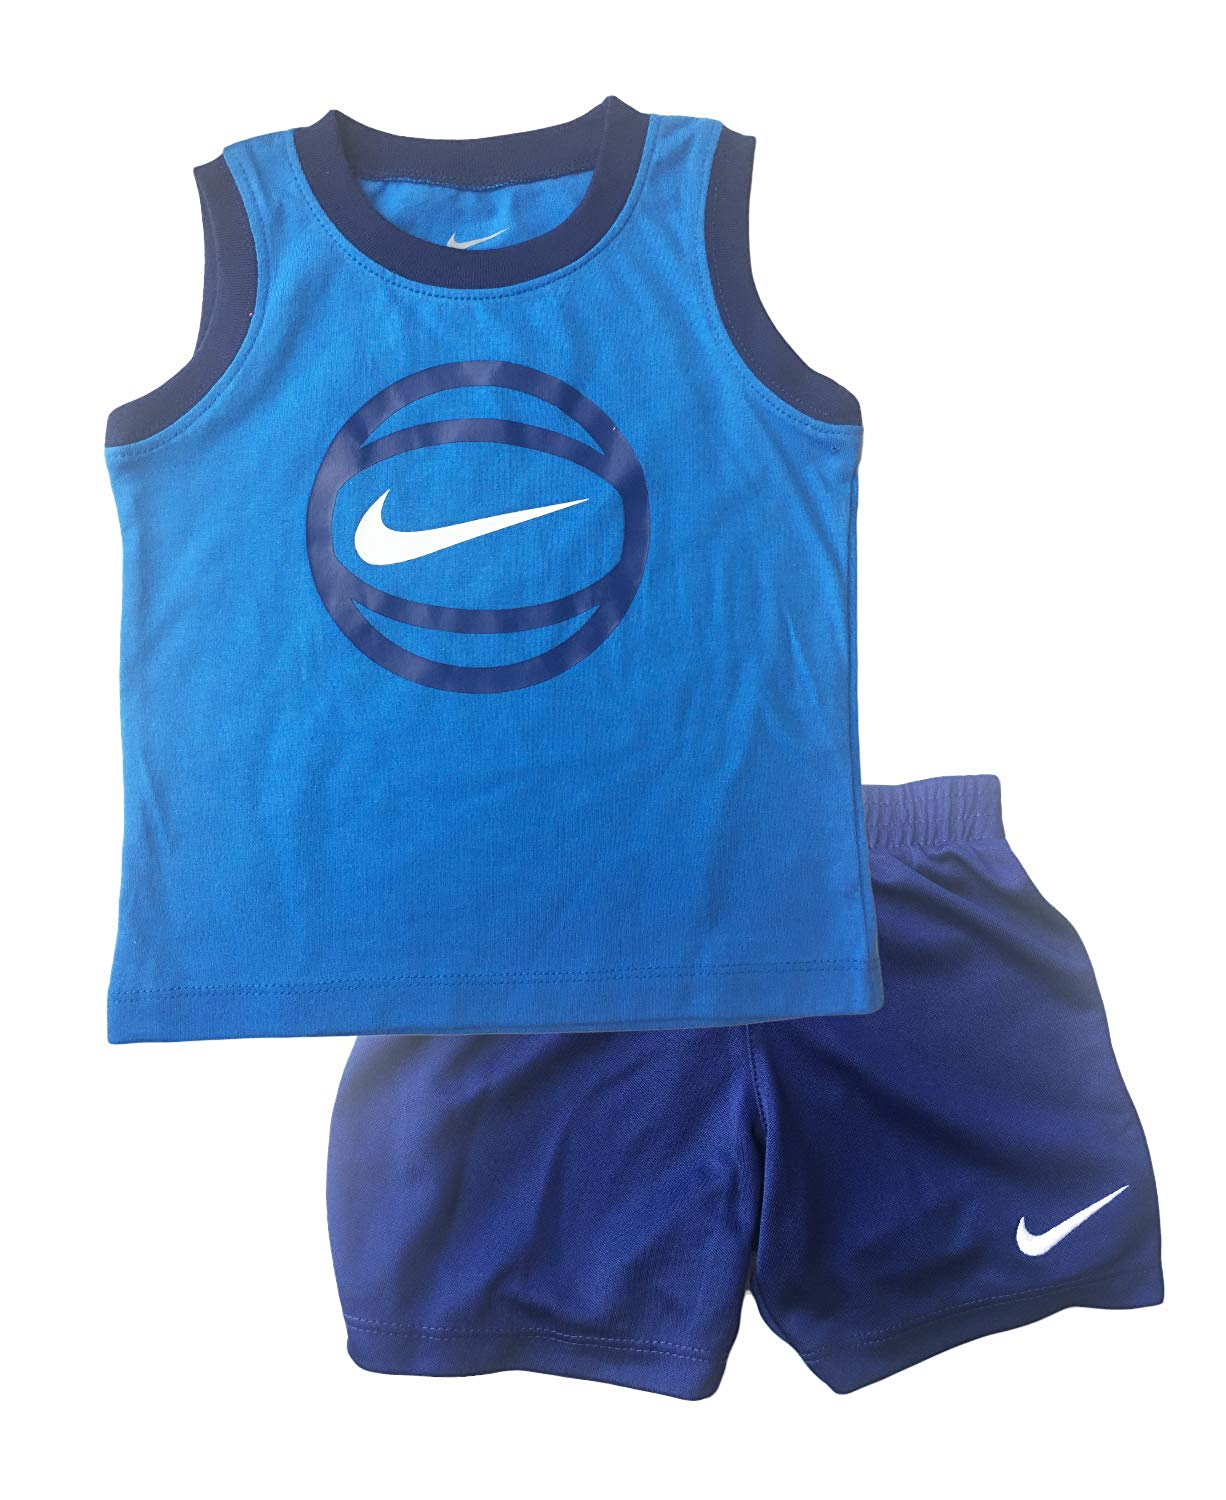 2-PC Nike Boys Top and Shorts Set - Baby Clothes 106c75280